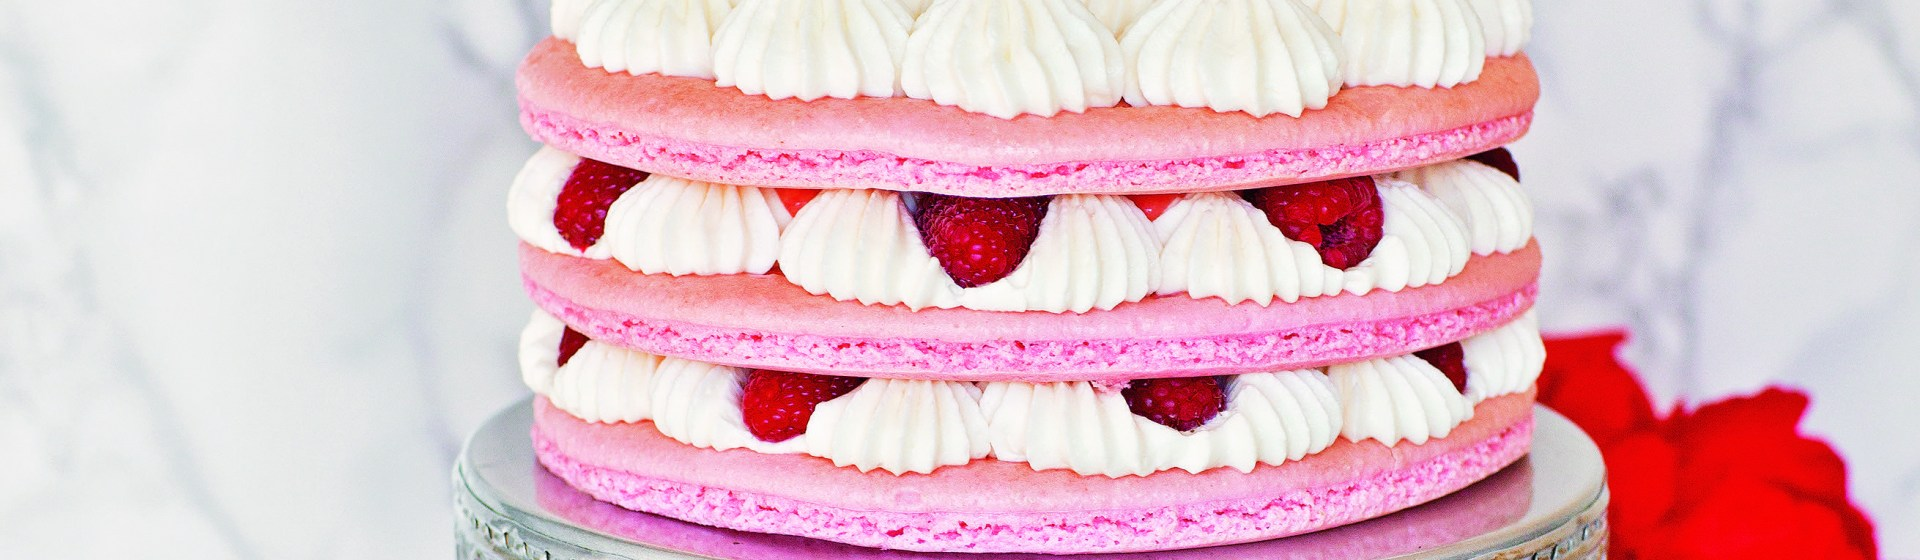 How To Make A Raspberry Lemon Macaron Cake